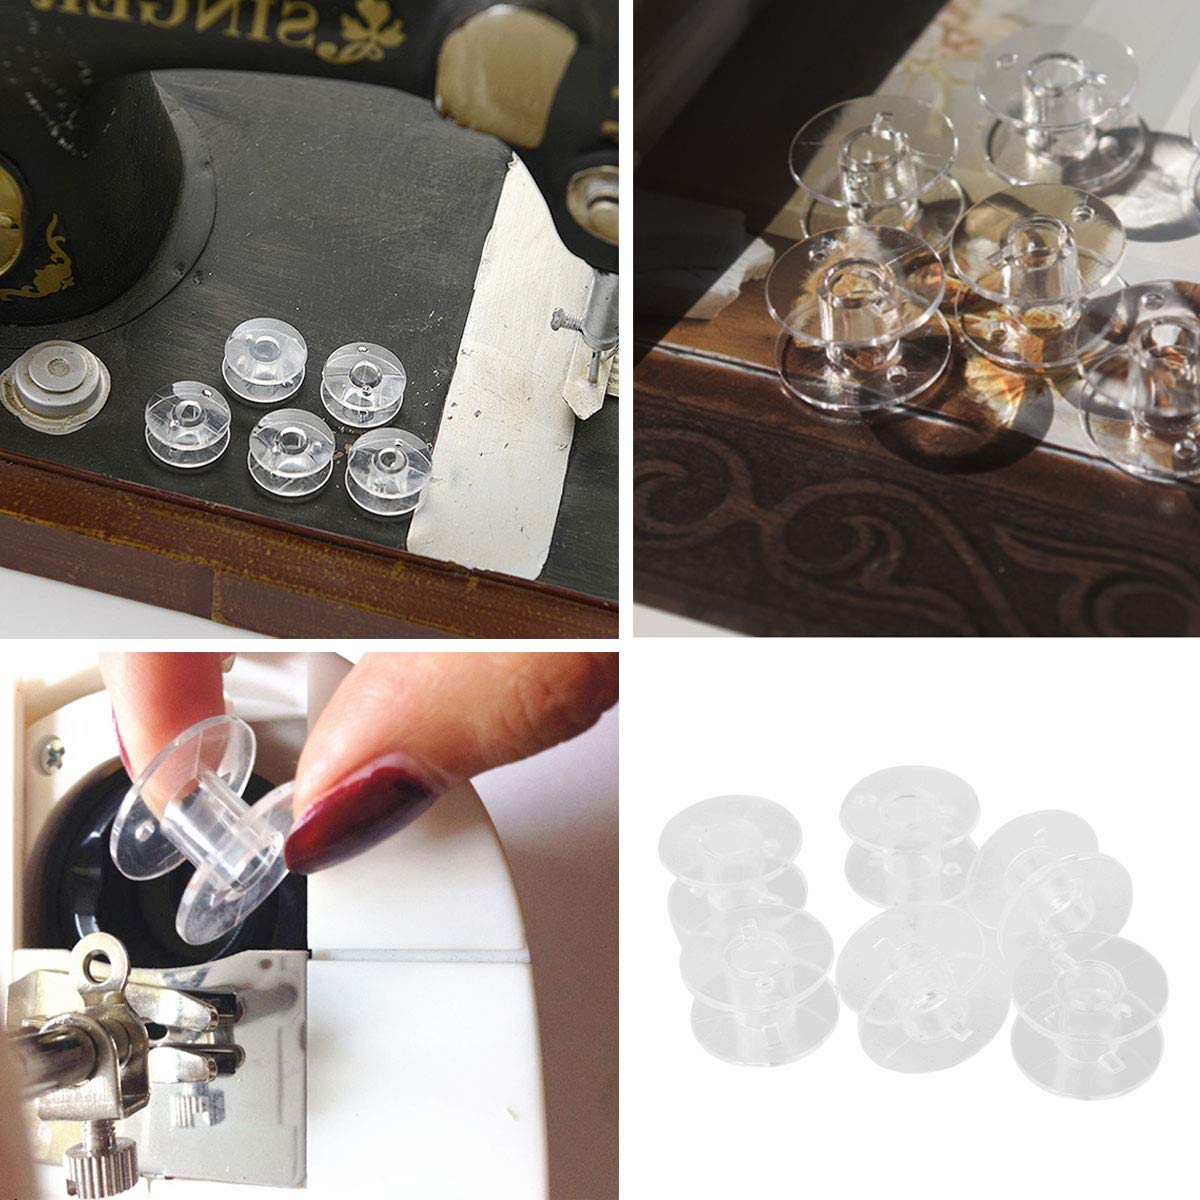 53 Pcs Plastic Sewing Machine Bobbins with Transparent Storage Case and Soft Measuring Tape by mifengdaer